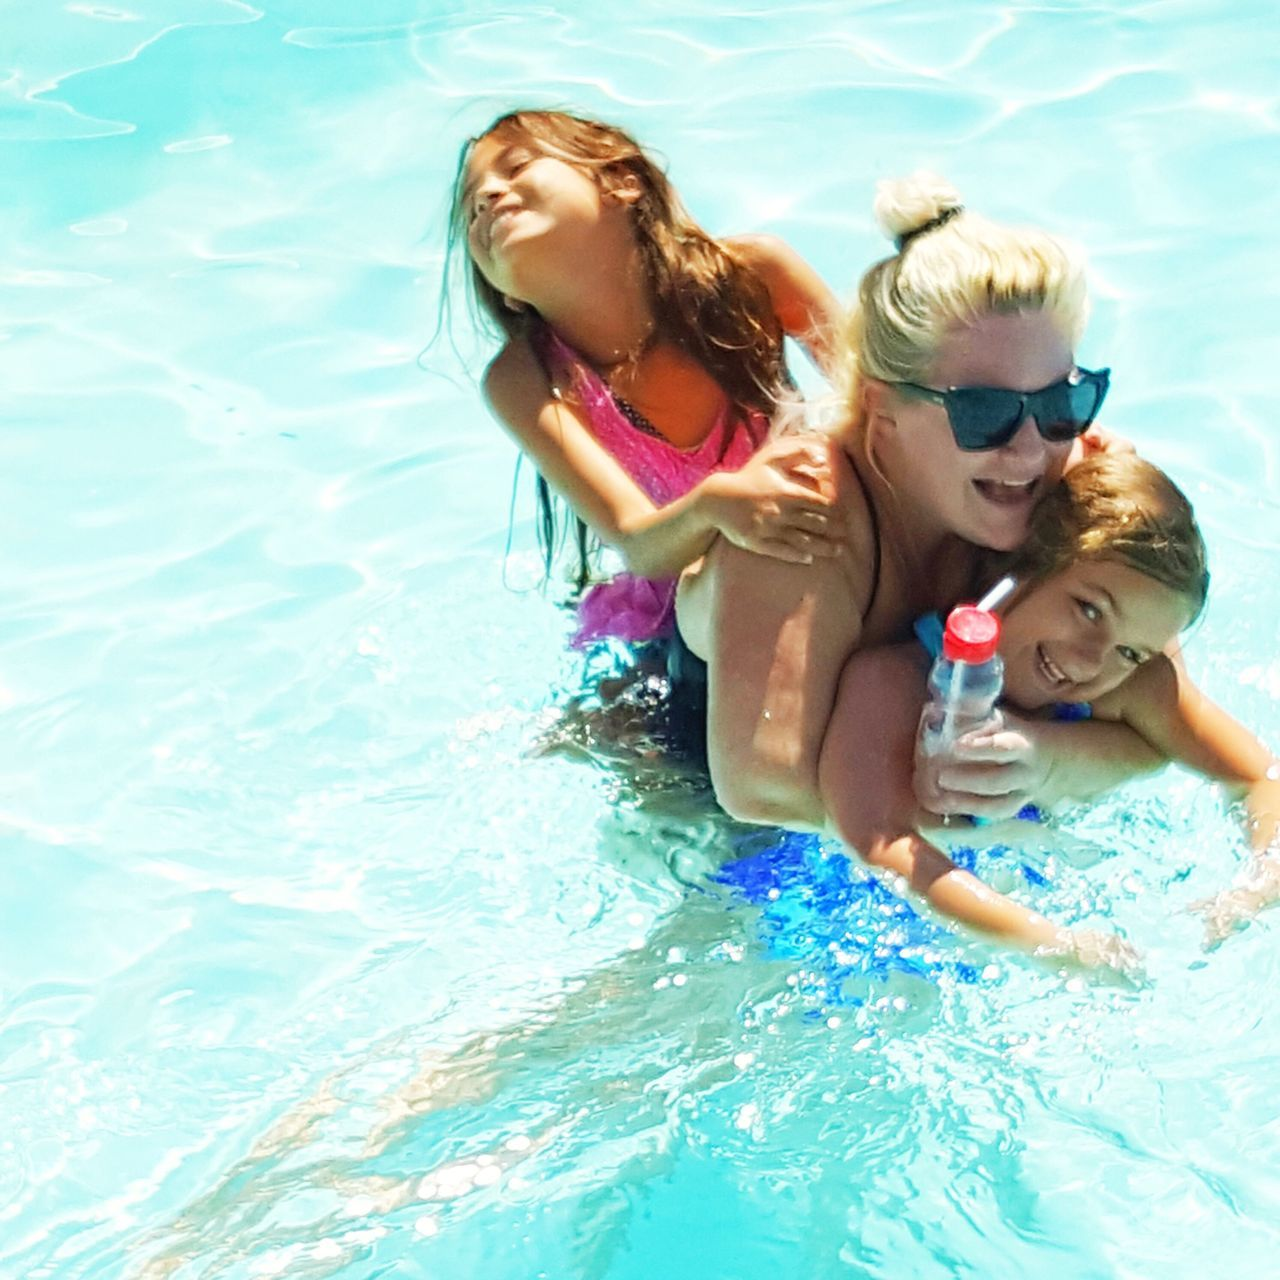 swimming pool, girls, childhood, togetherness, child, water, mother, leisure activity, boys, fun, summer, elementary age, daughter, day, family, bonding, enjoyment, vacations, happiness, smiling, outdoors, swimming, real people, friendship, people, adult